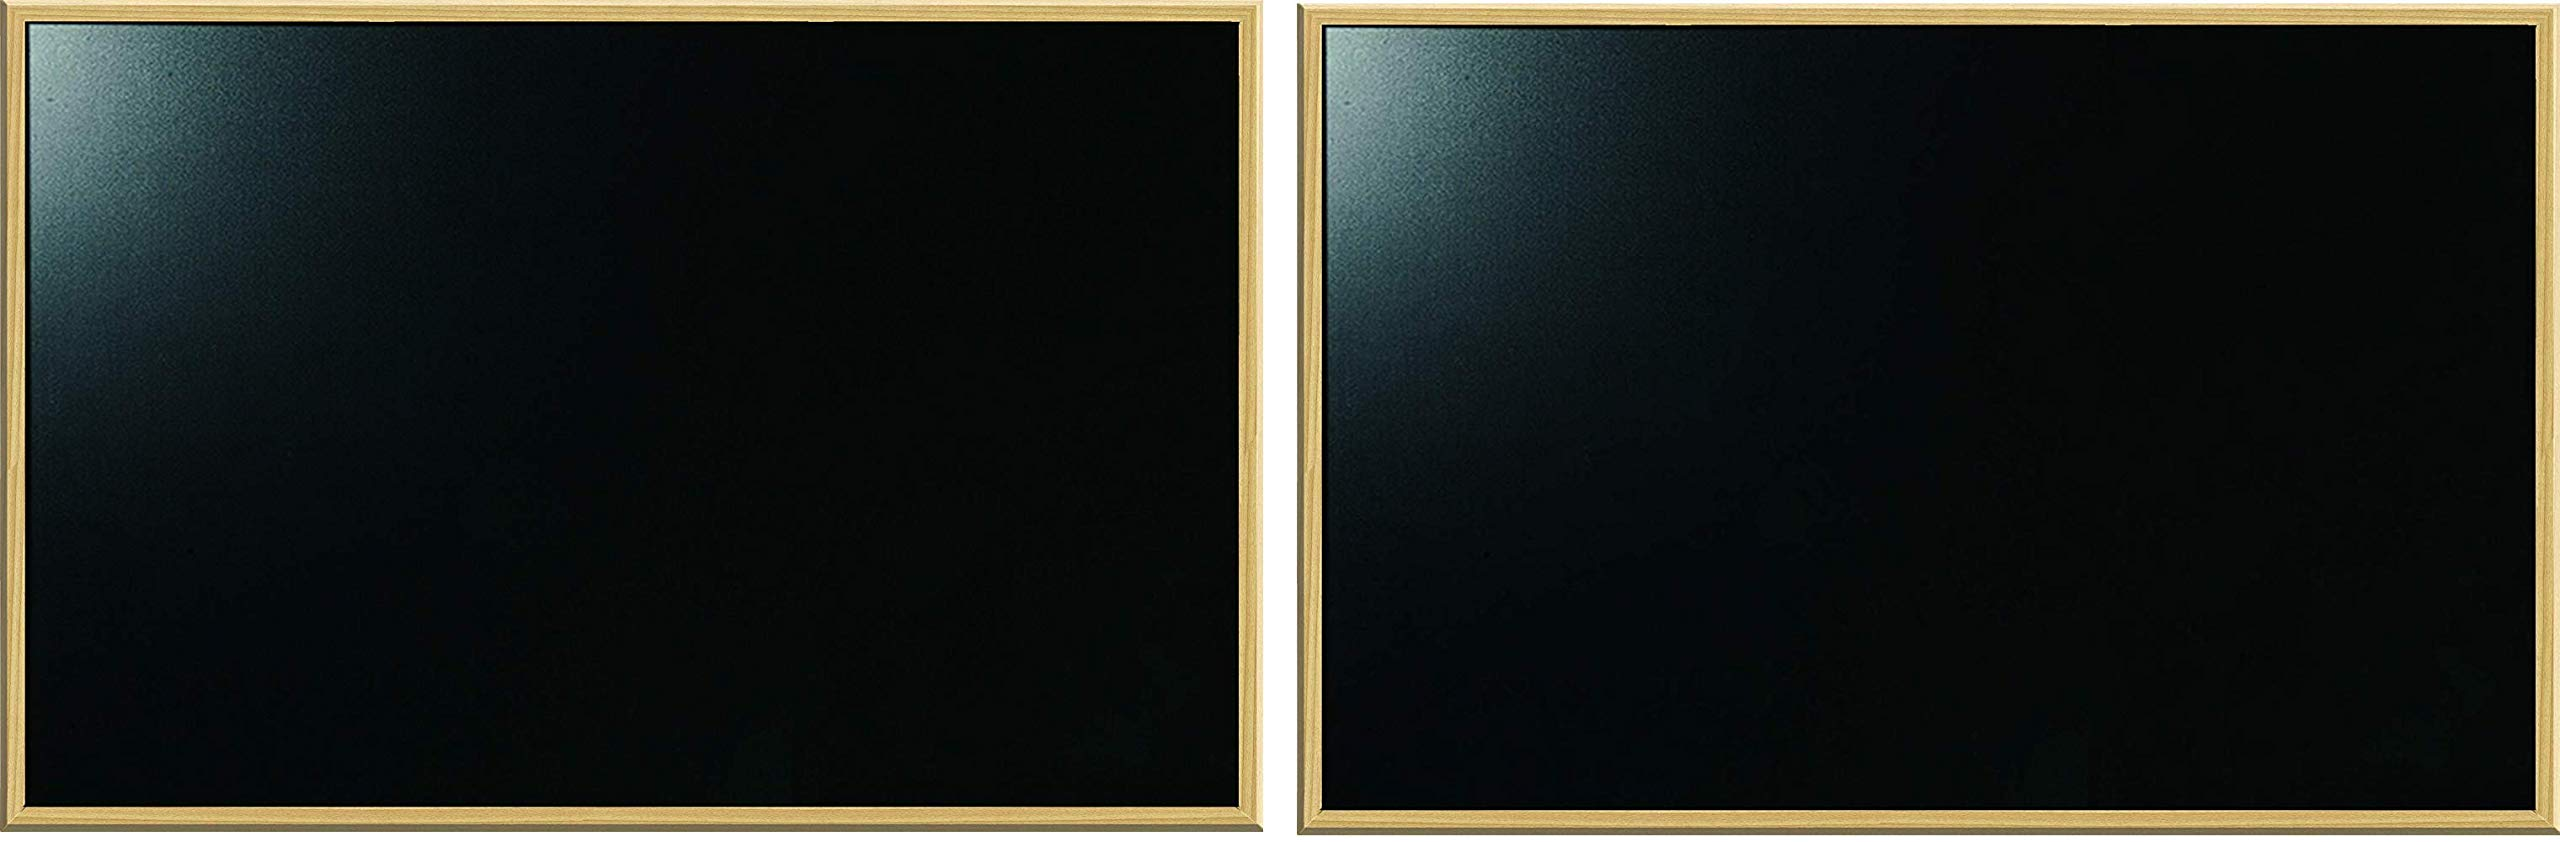 The Board Dudes Chalk Boards Wood Frame 23 x 35 inches (Twо Расk)